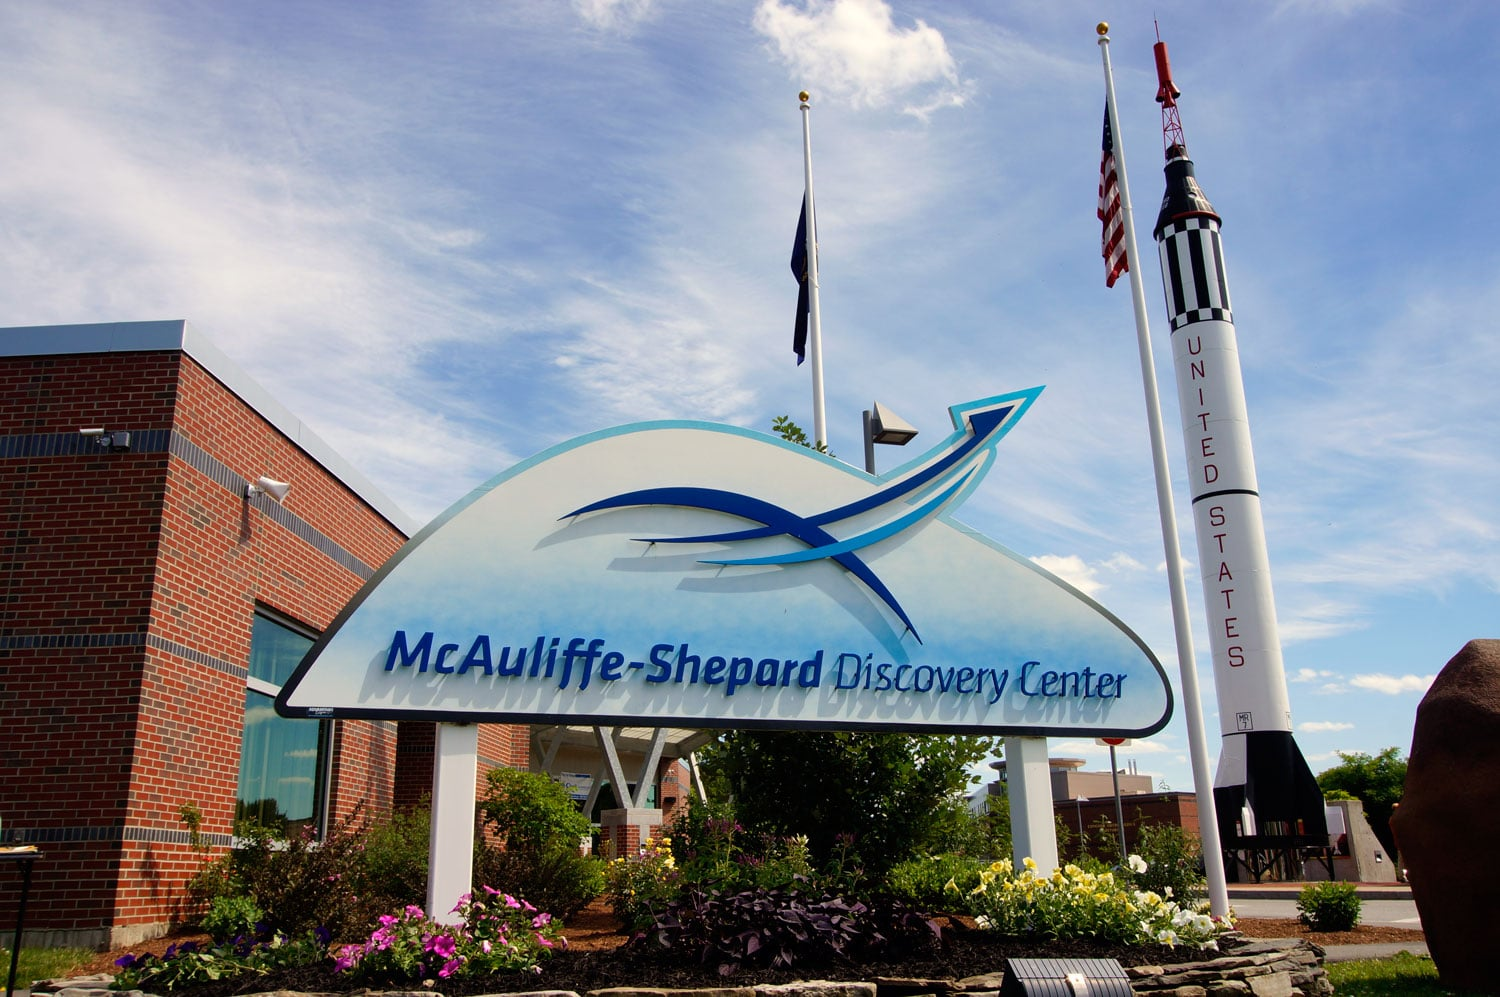 The McAuliffe-Shepard Discovery Center, a science museum located at 2 Institute Dr, Concord, NH